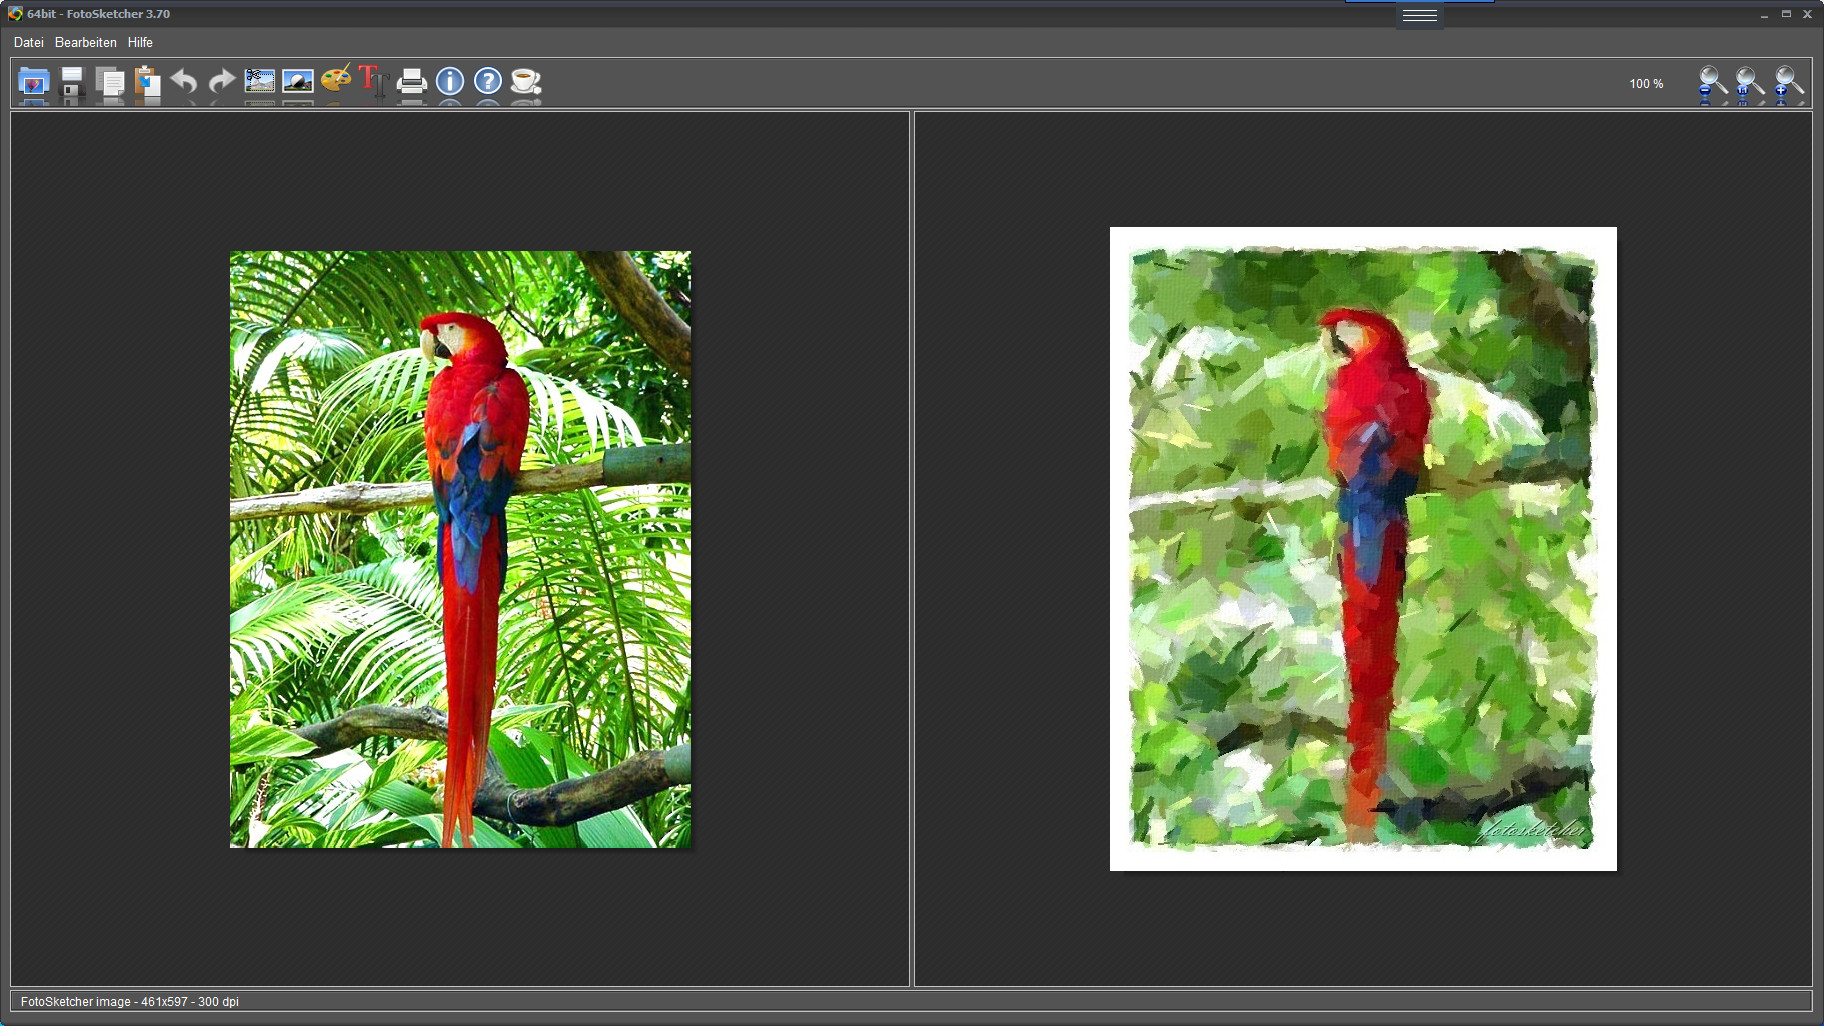 Screenshot 1 - FotoSketcher Portable